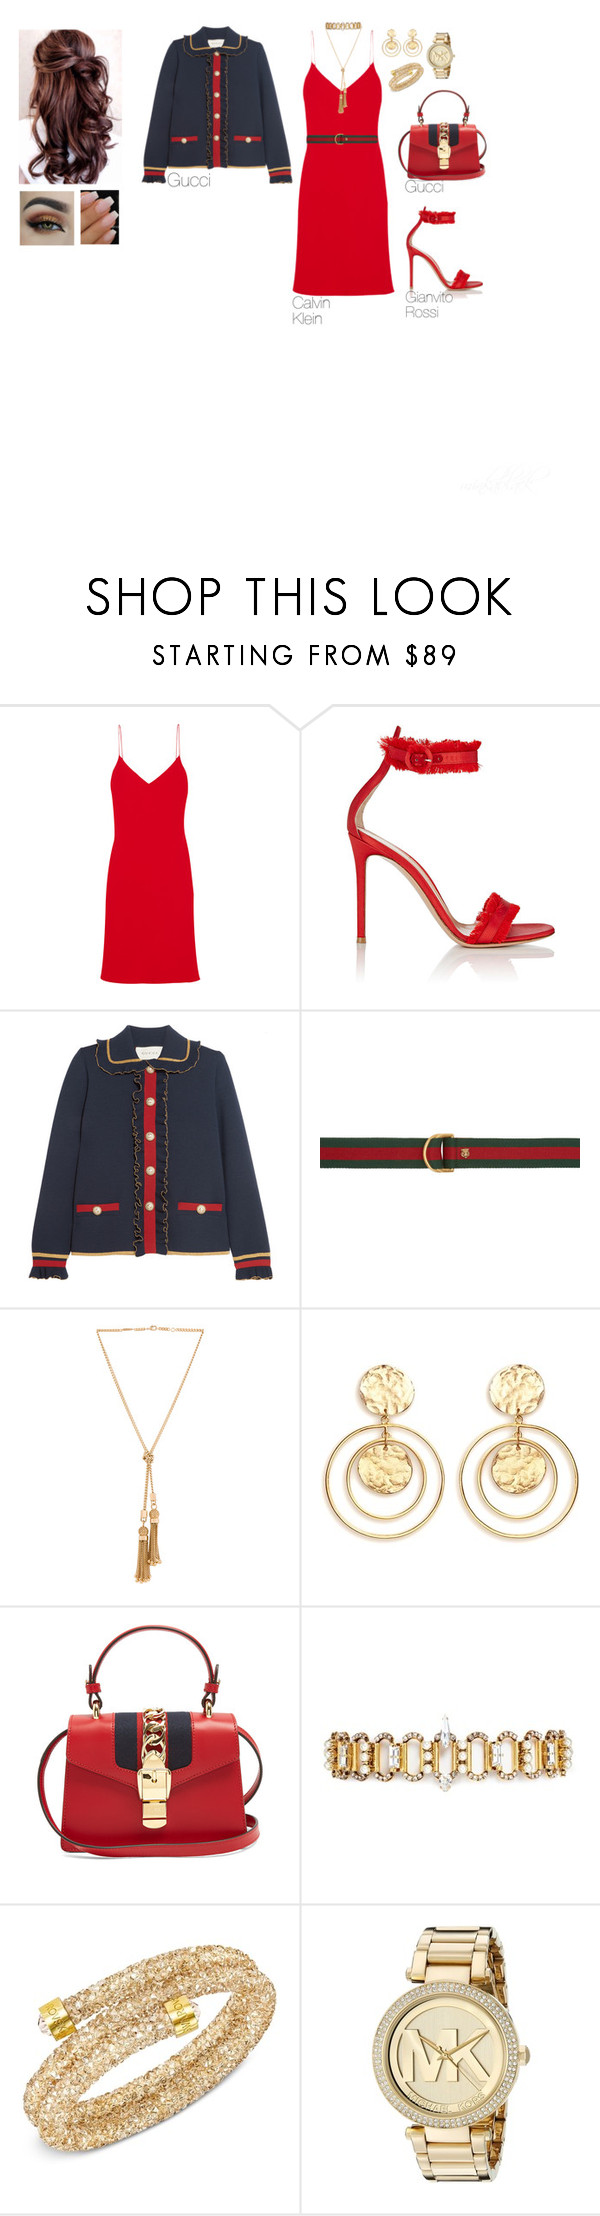 """272"" by minkablack ❤ liked on Polyvore featuring Calvin Klein Collection, Gianvito Rossi, Gucci, Chloé, Kenneth Jay Lane, Erickson Beamon, Swarovski and Michael Kors"